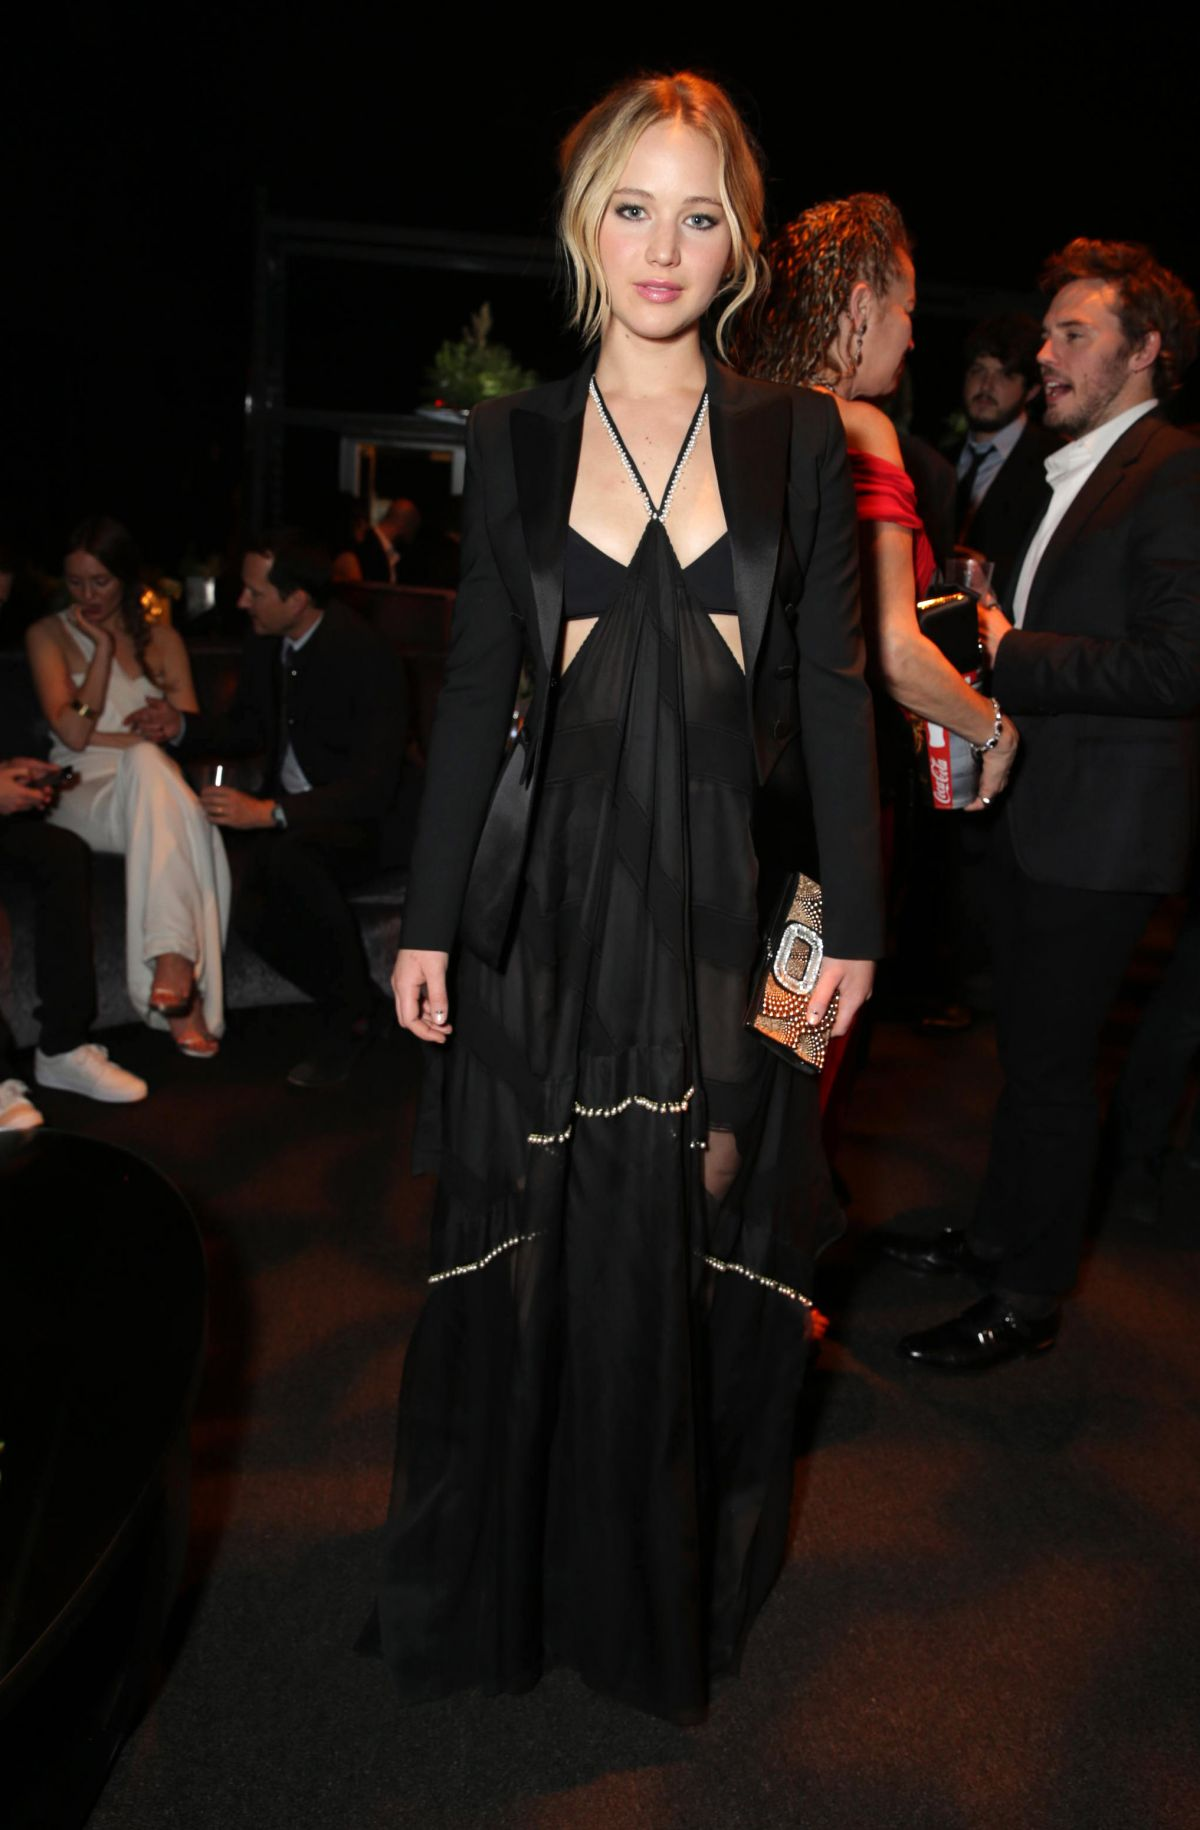 JENNIFER LAWRENCE at The Hunger Games: Mockingjay – Part 1 Premiere Afterparty in Los Angeles